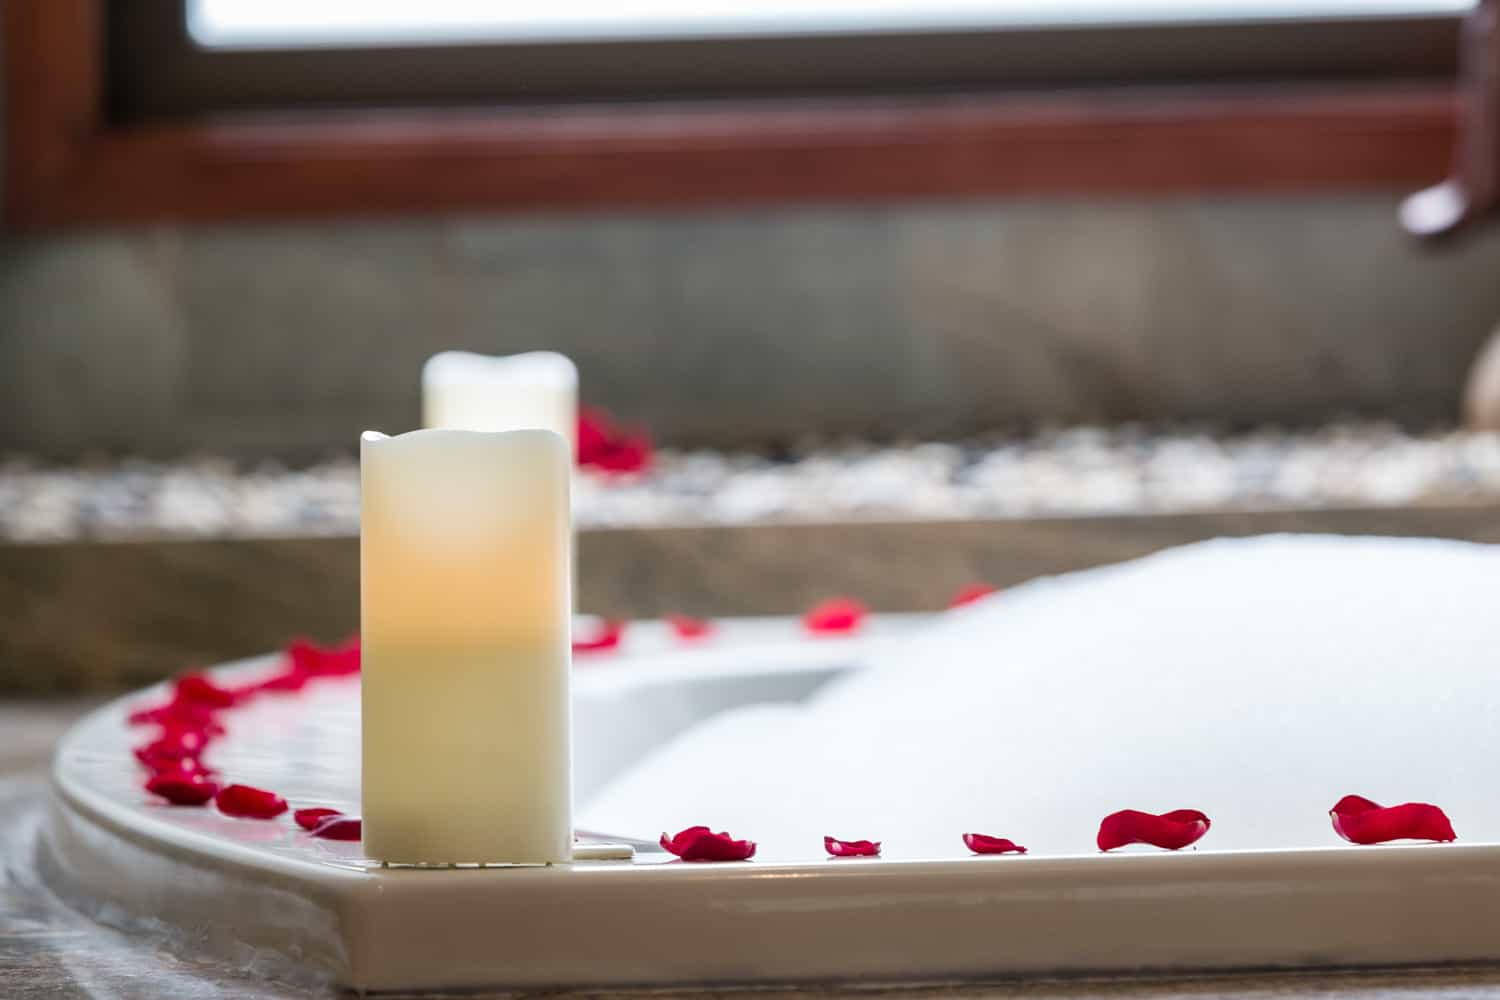 Red rose petals on jacuzzi tub for romantic couple's bath.